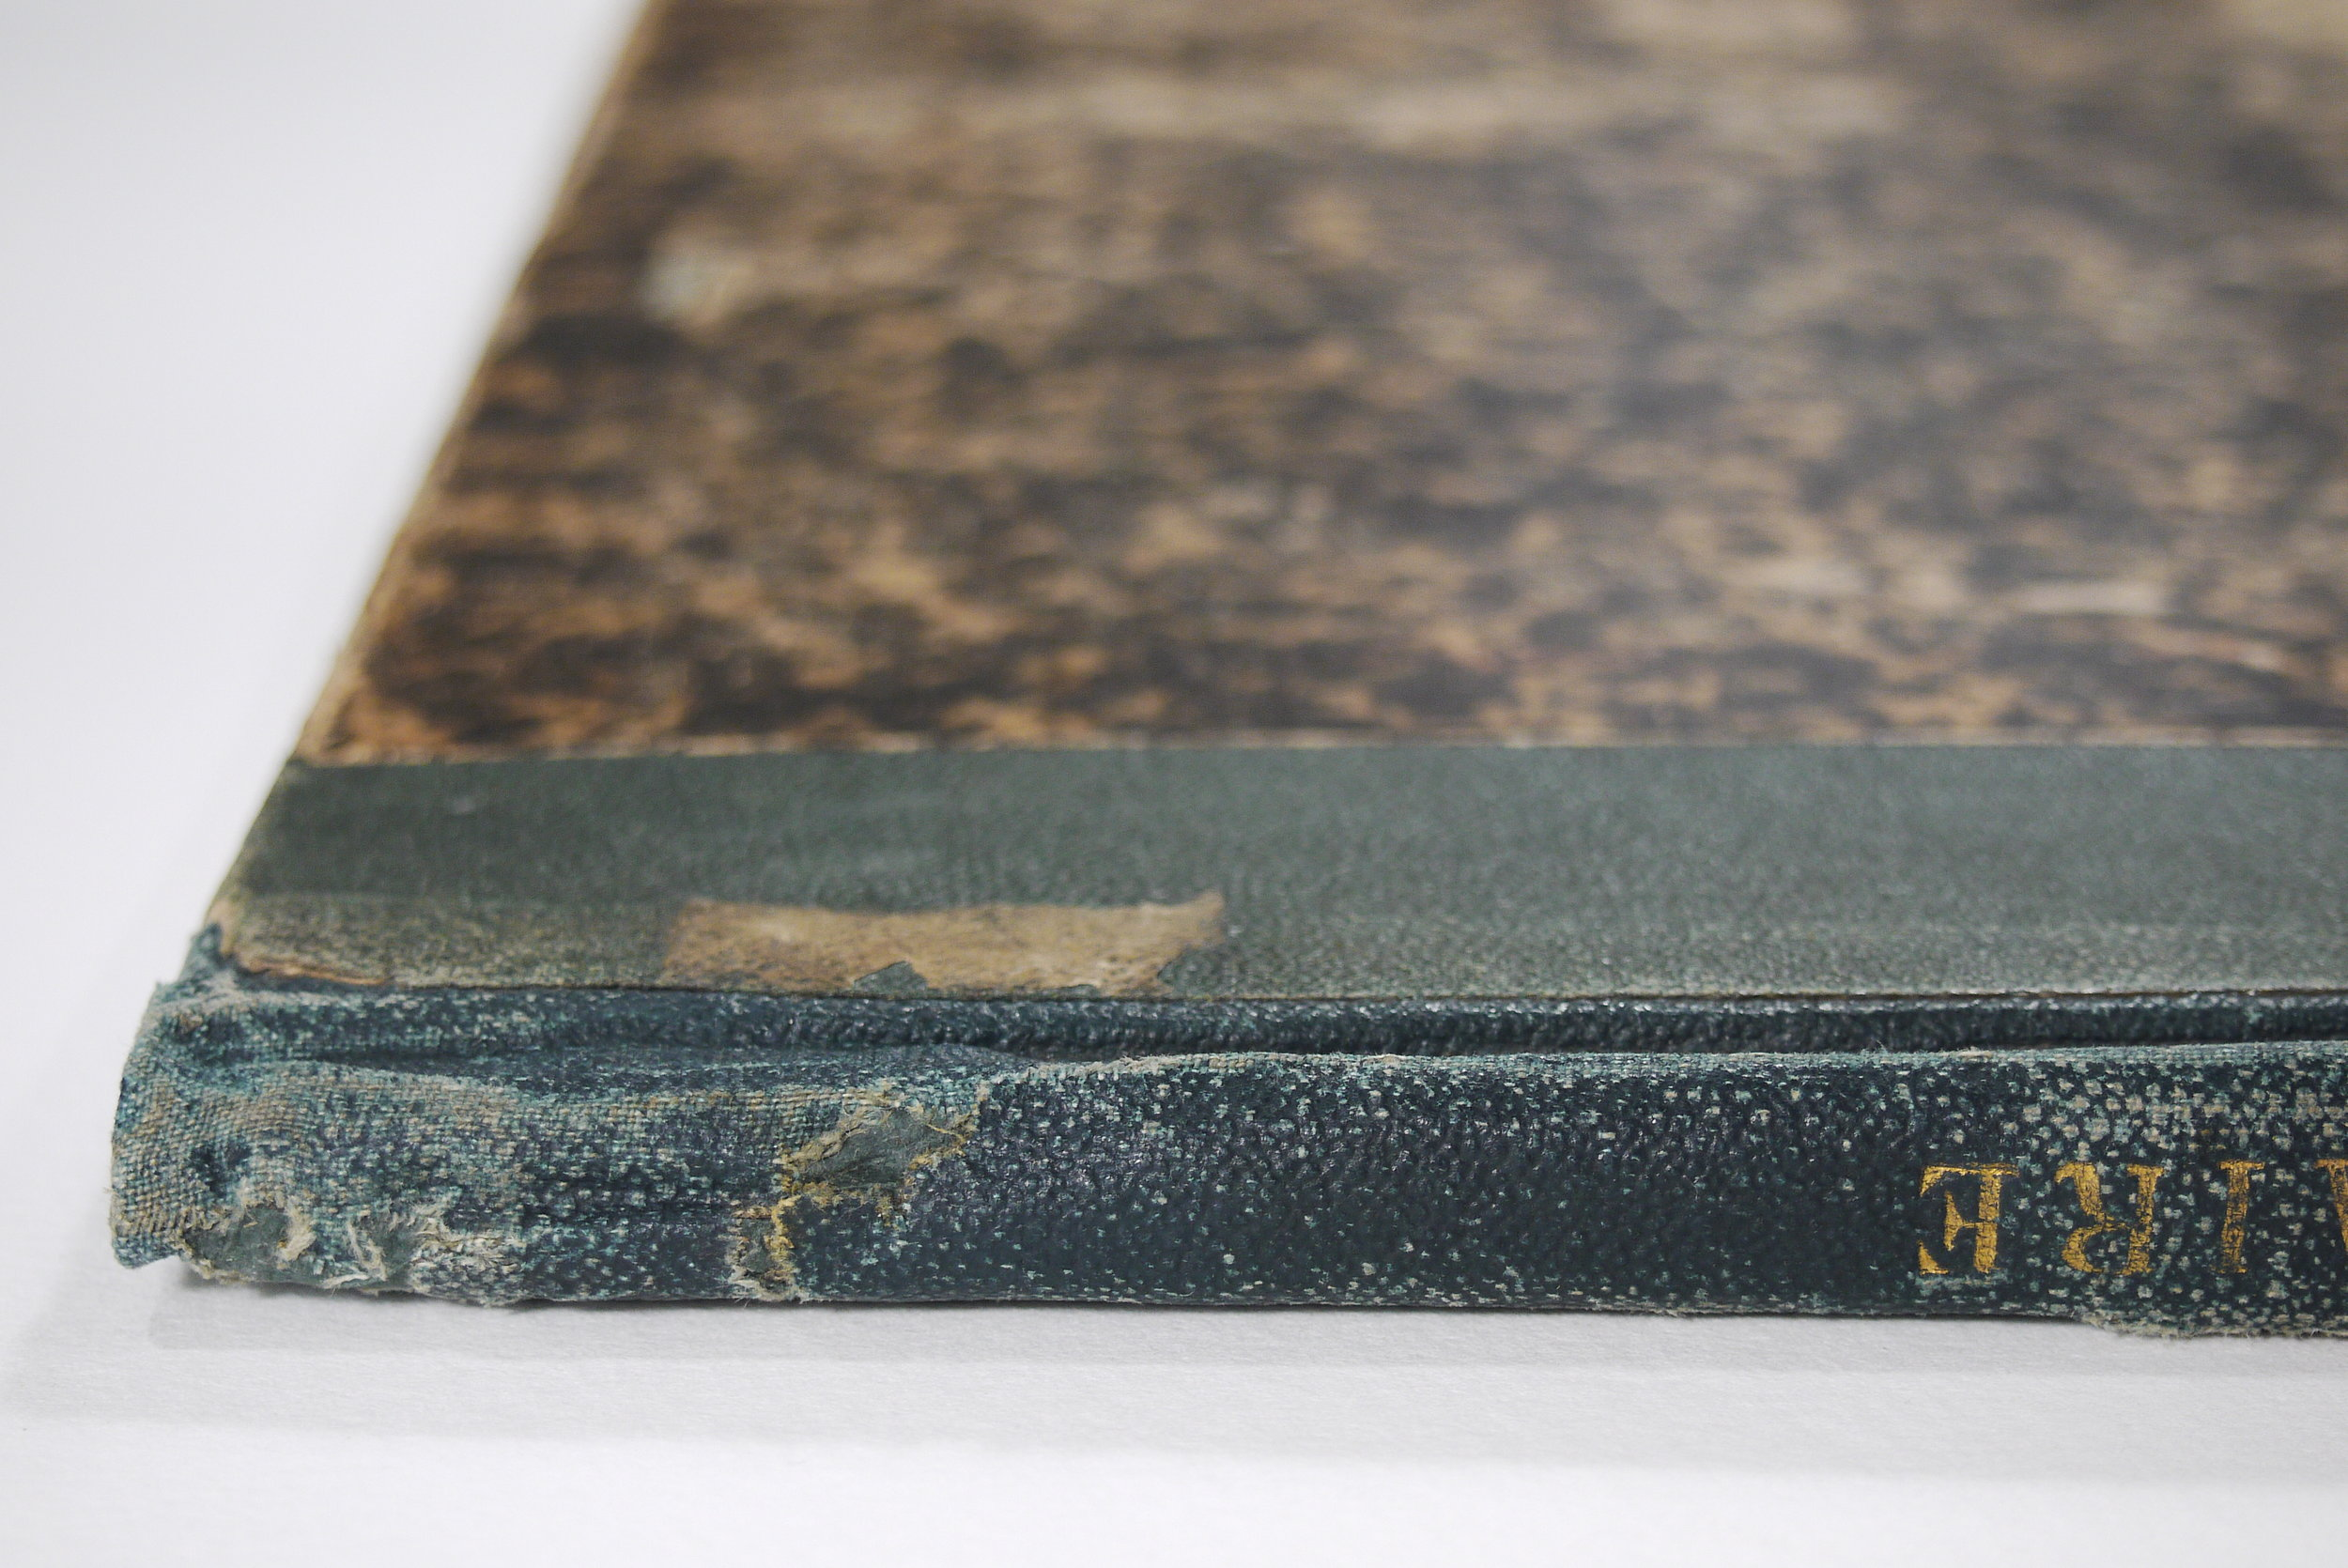 The spine of the book is repaired.